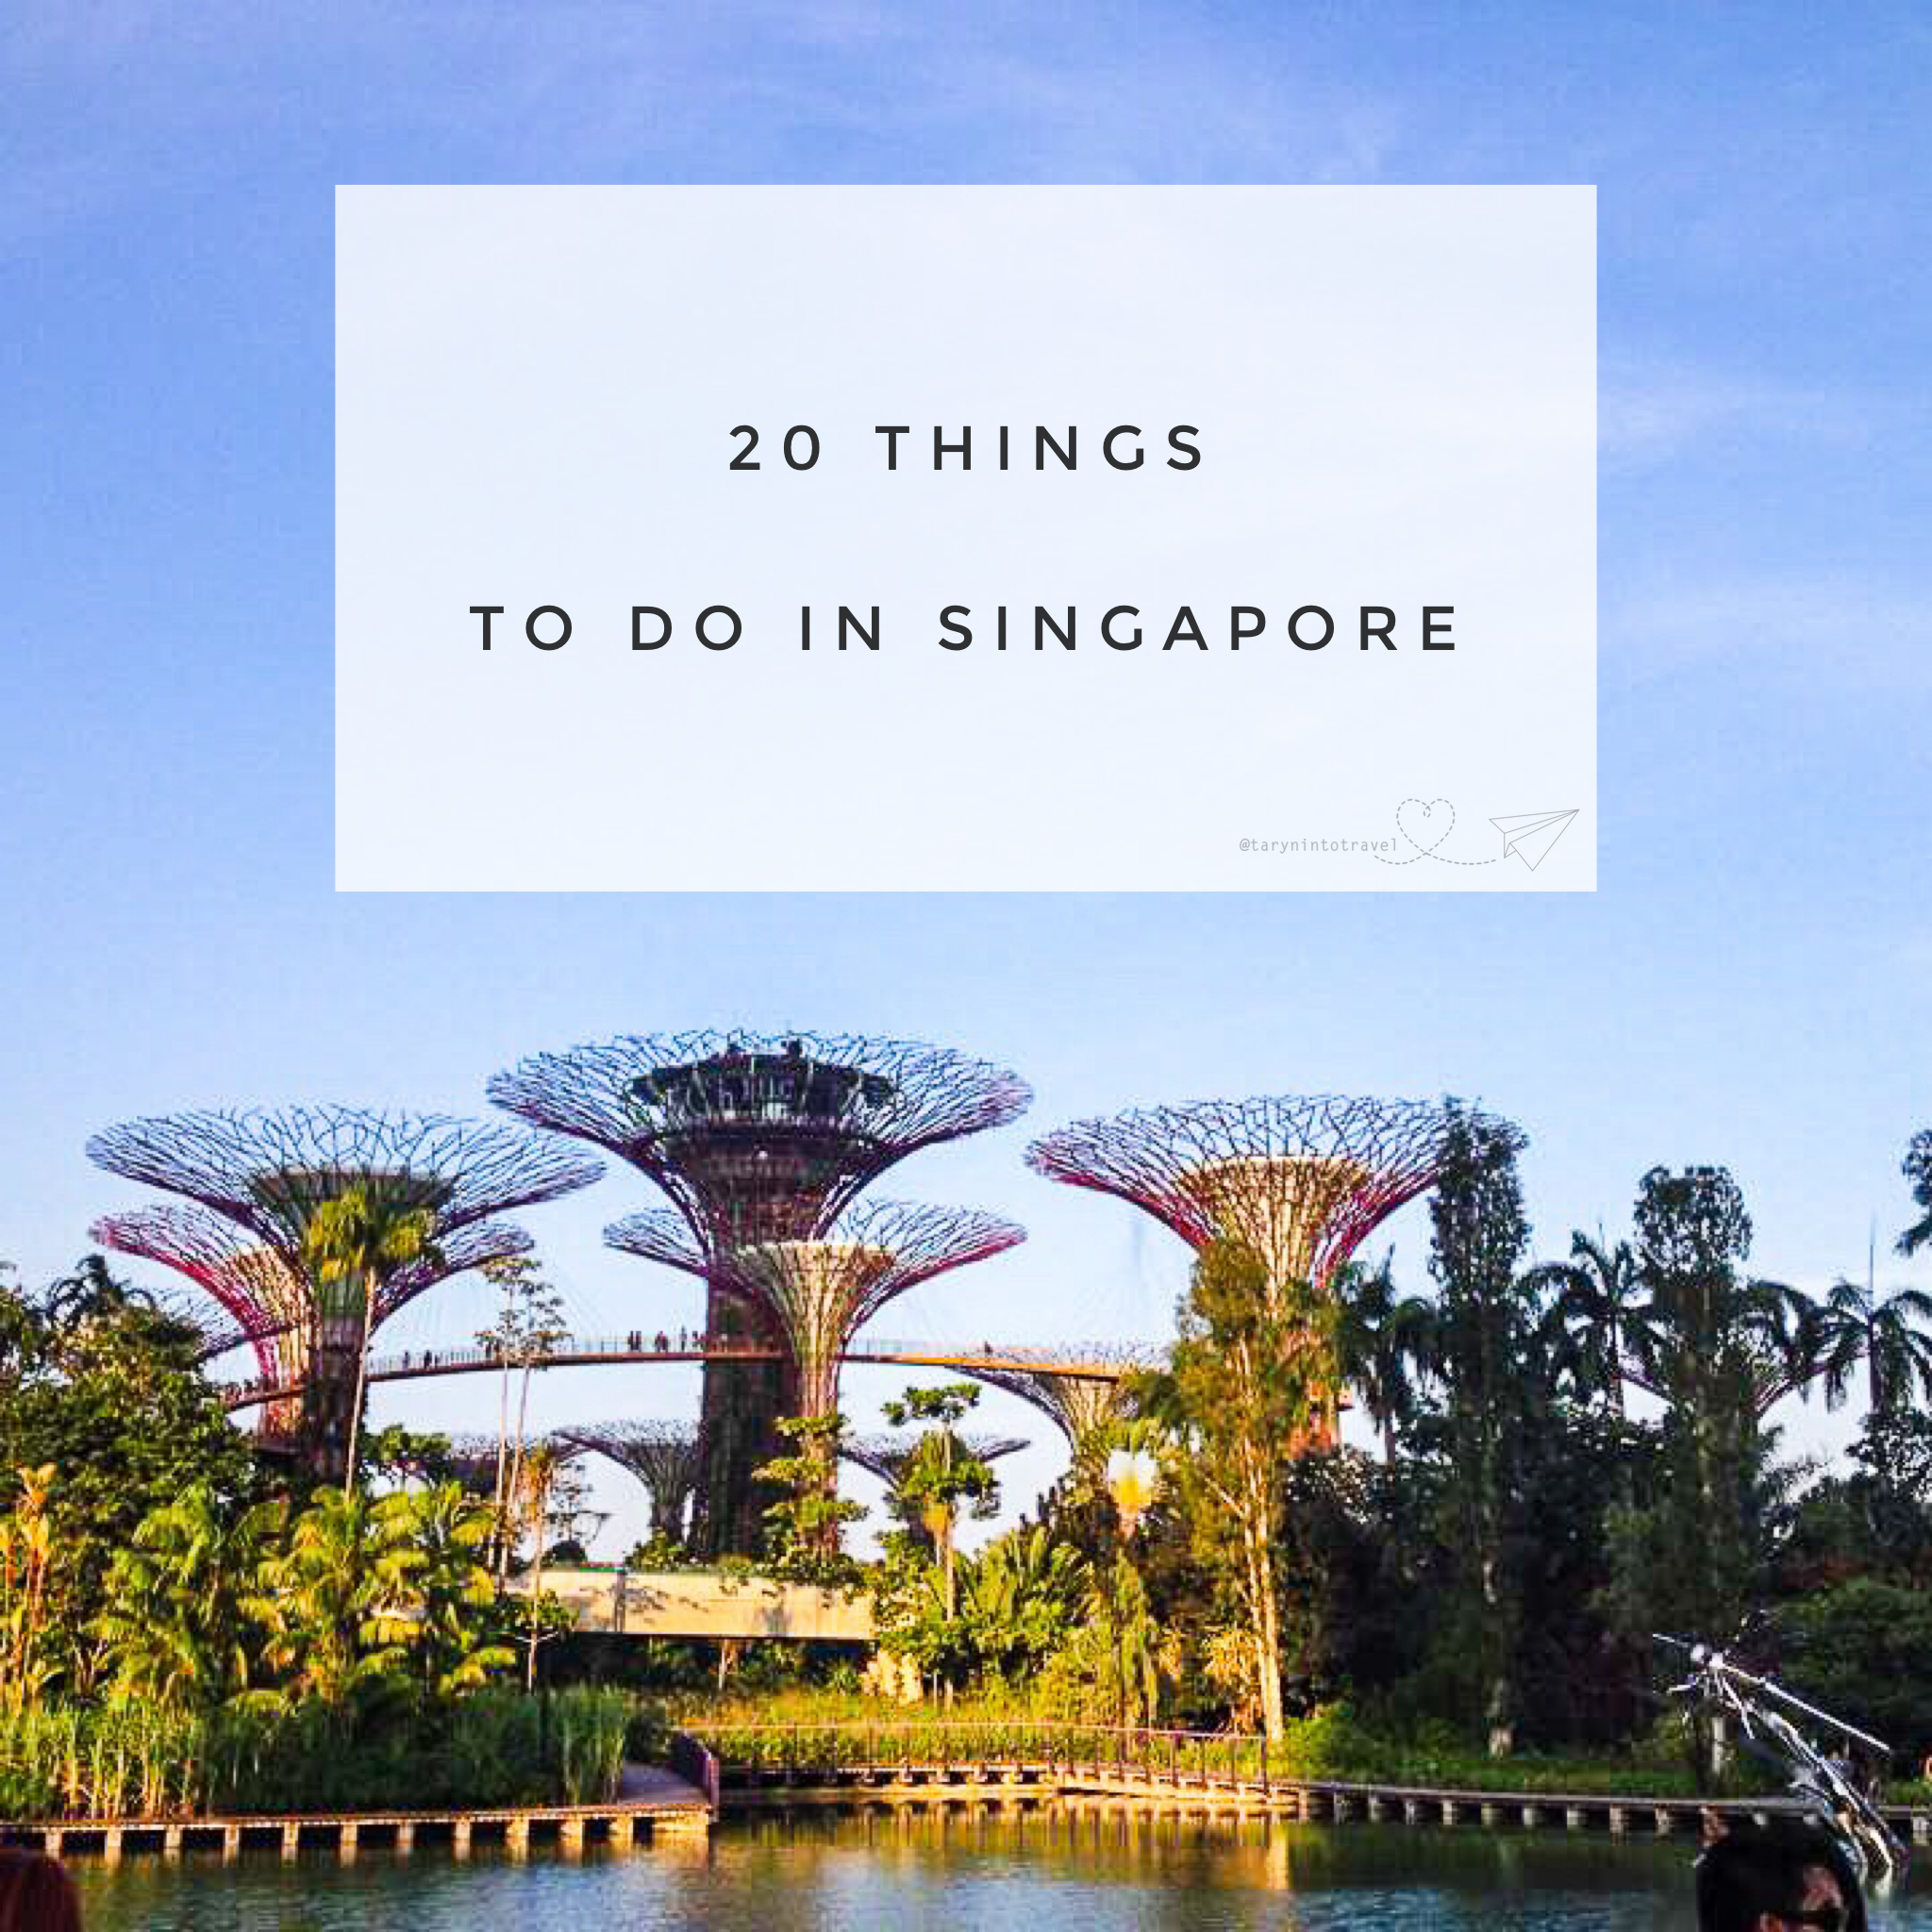 20-things-to-do-in-singapore-1